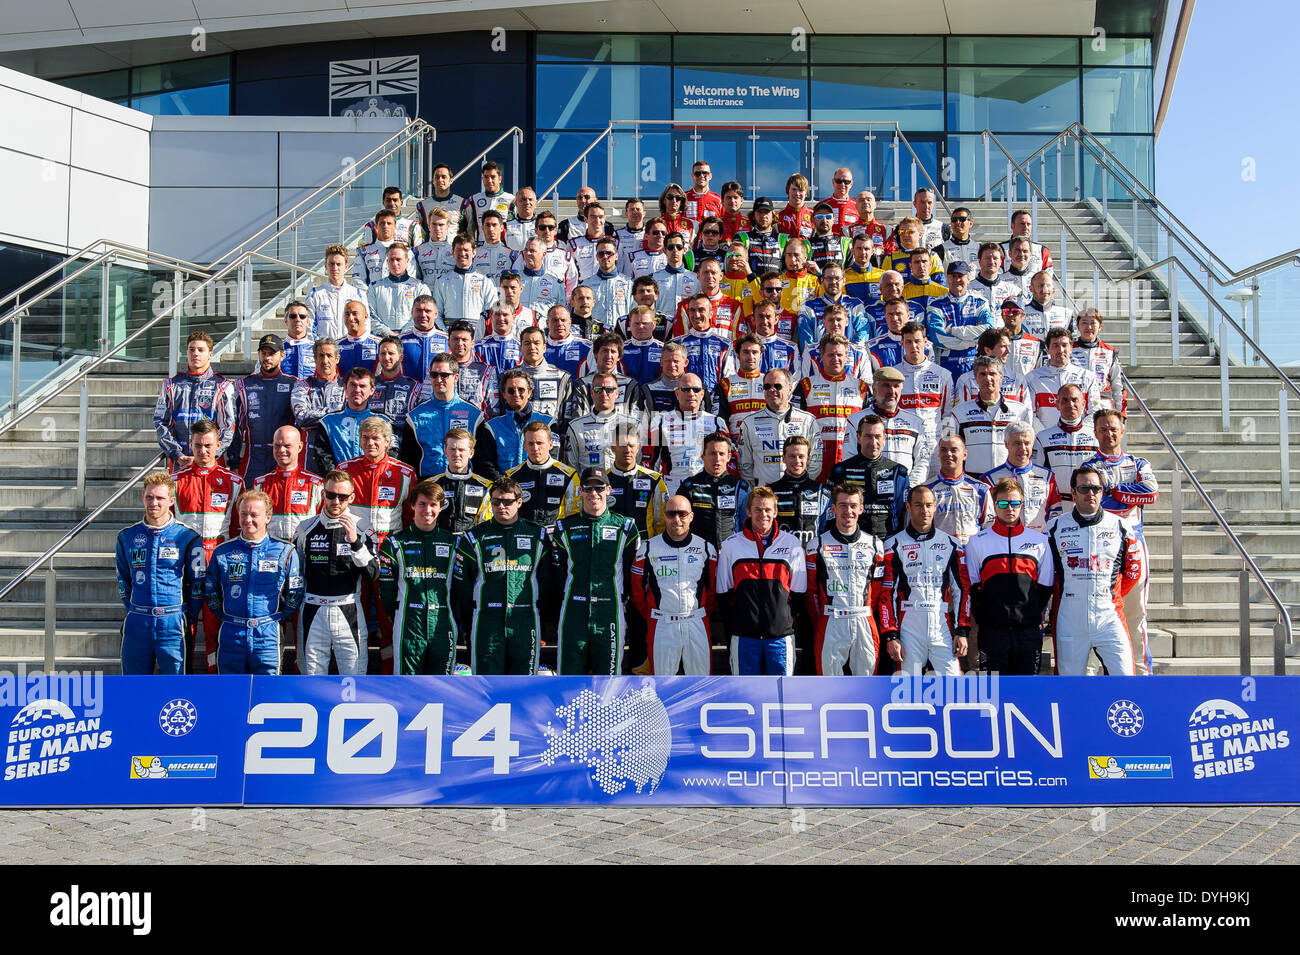 Northampton, UK. 18th Apr, 2014. The European Le Mans Series drivers gather for a group photo on the steps of the Stock Photo